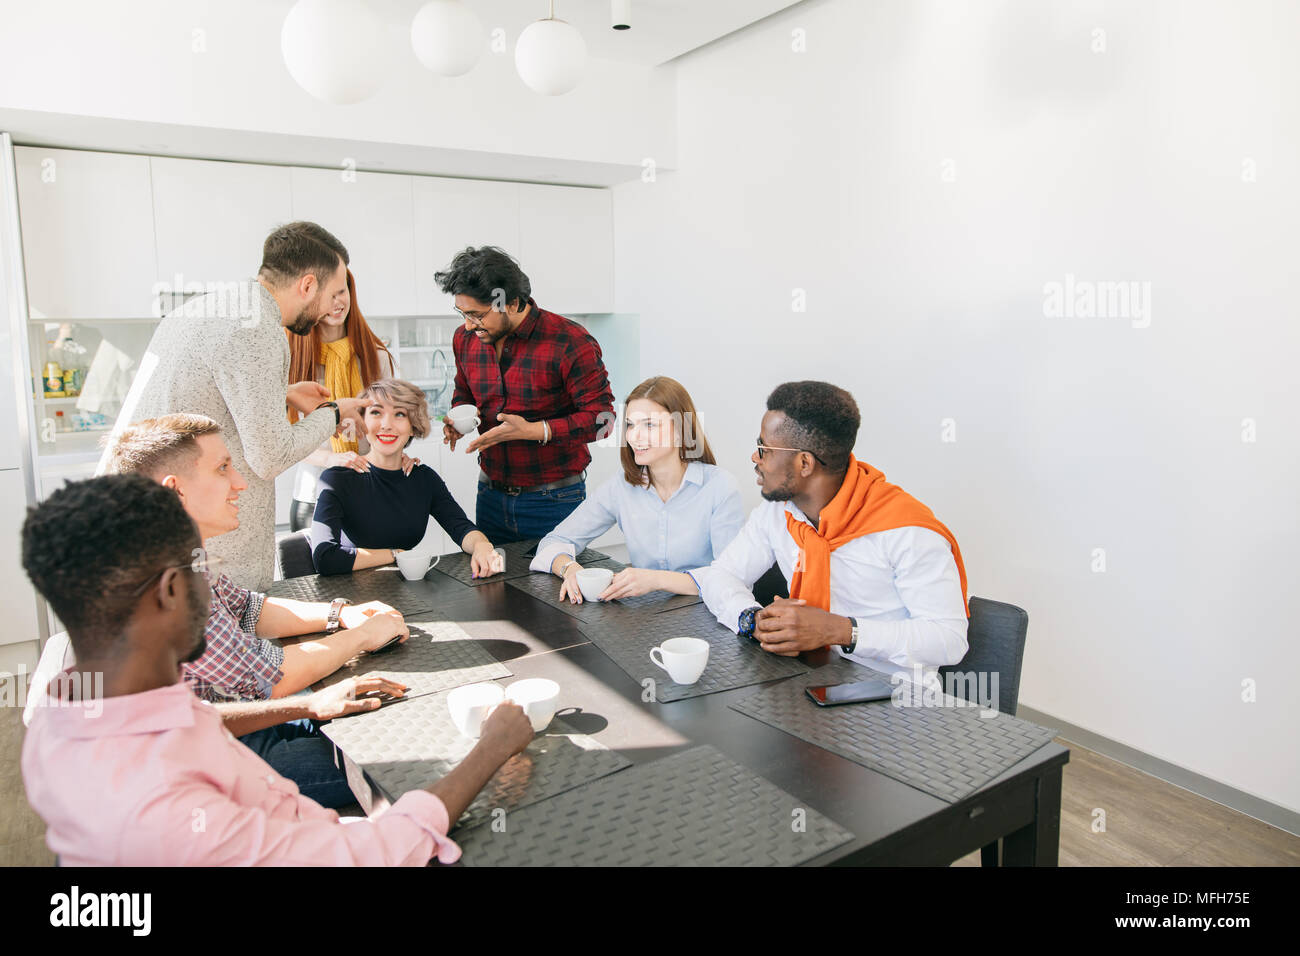 African man in checked shirt and Caucasian man in white sweater are standing next to their female colleague and making their case. two men proving the - Stock Image